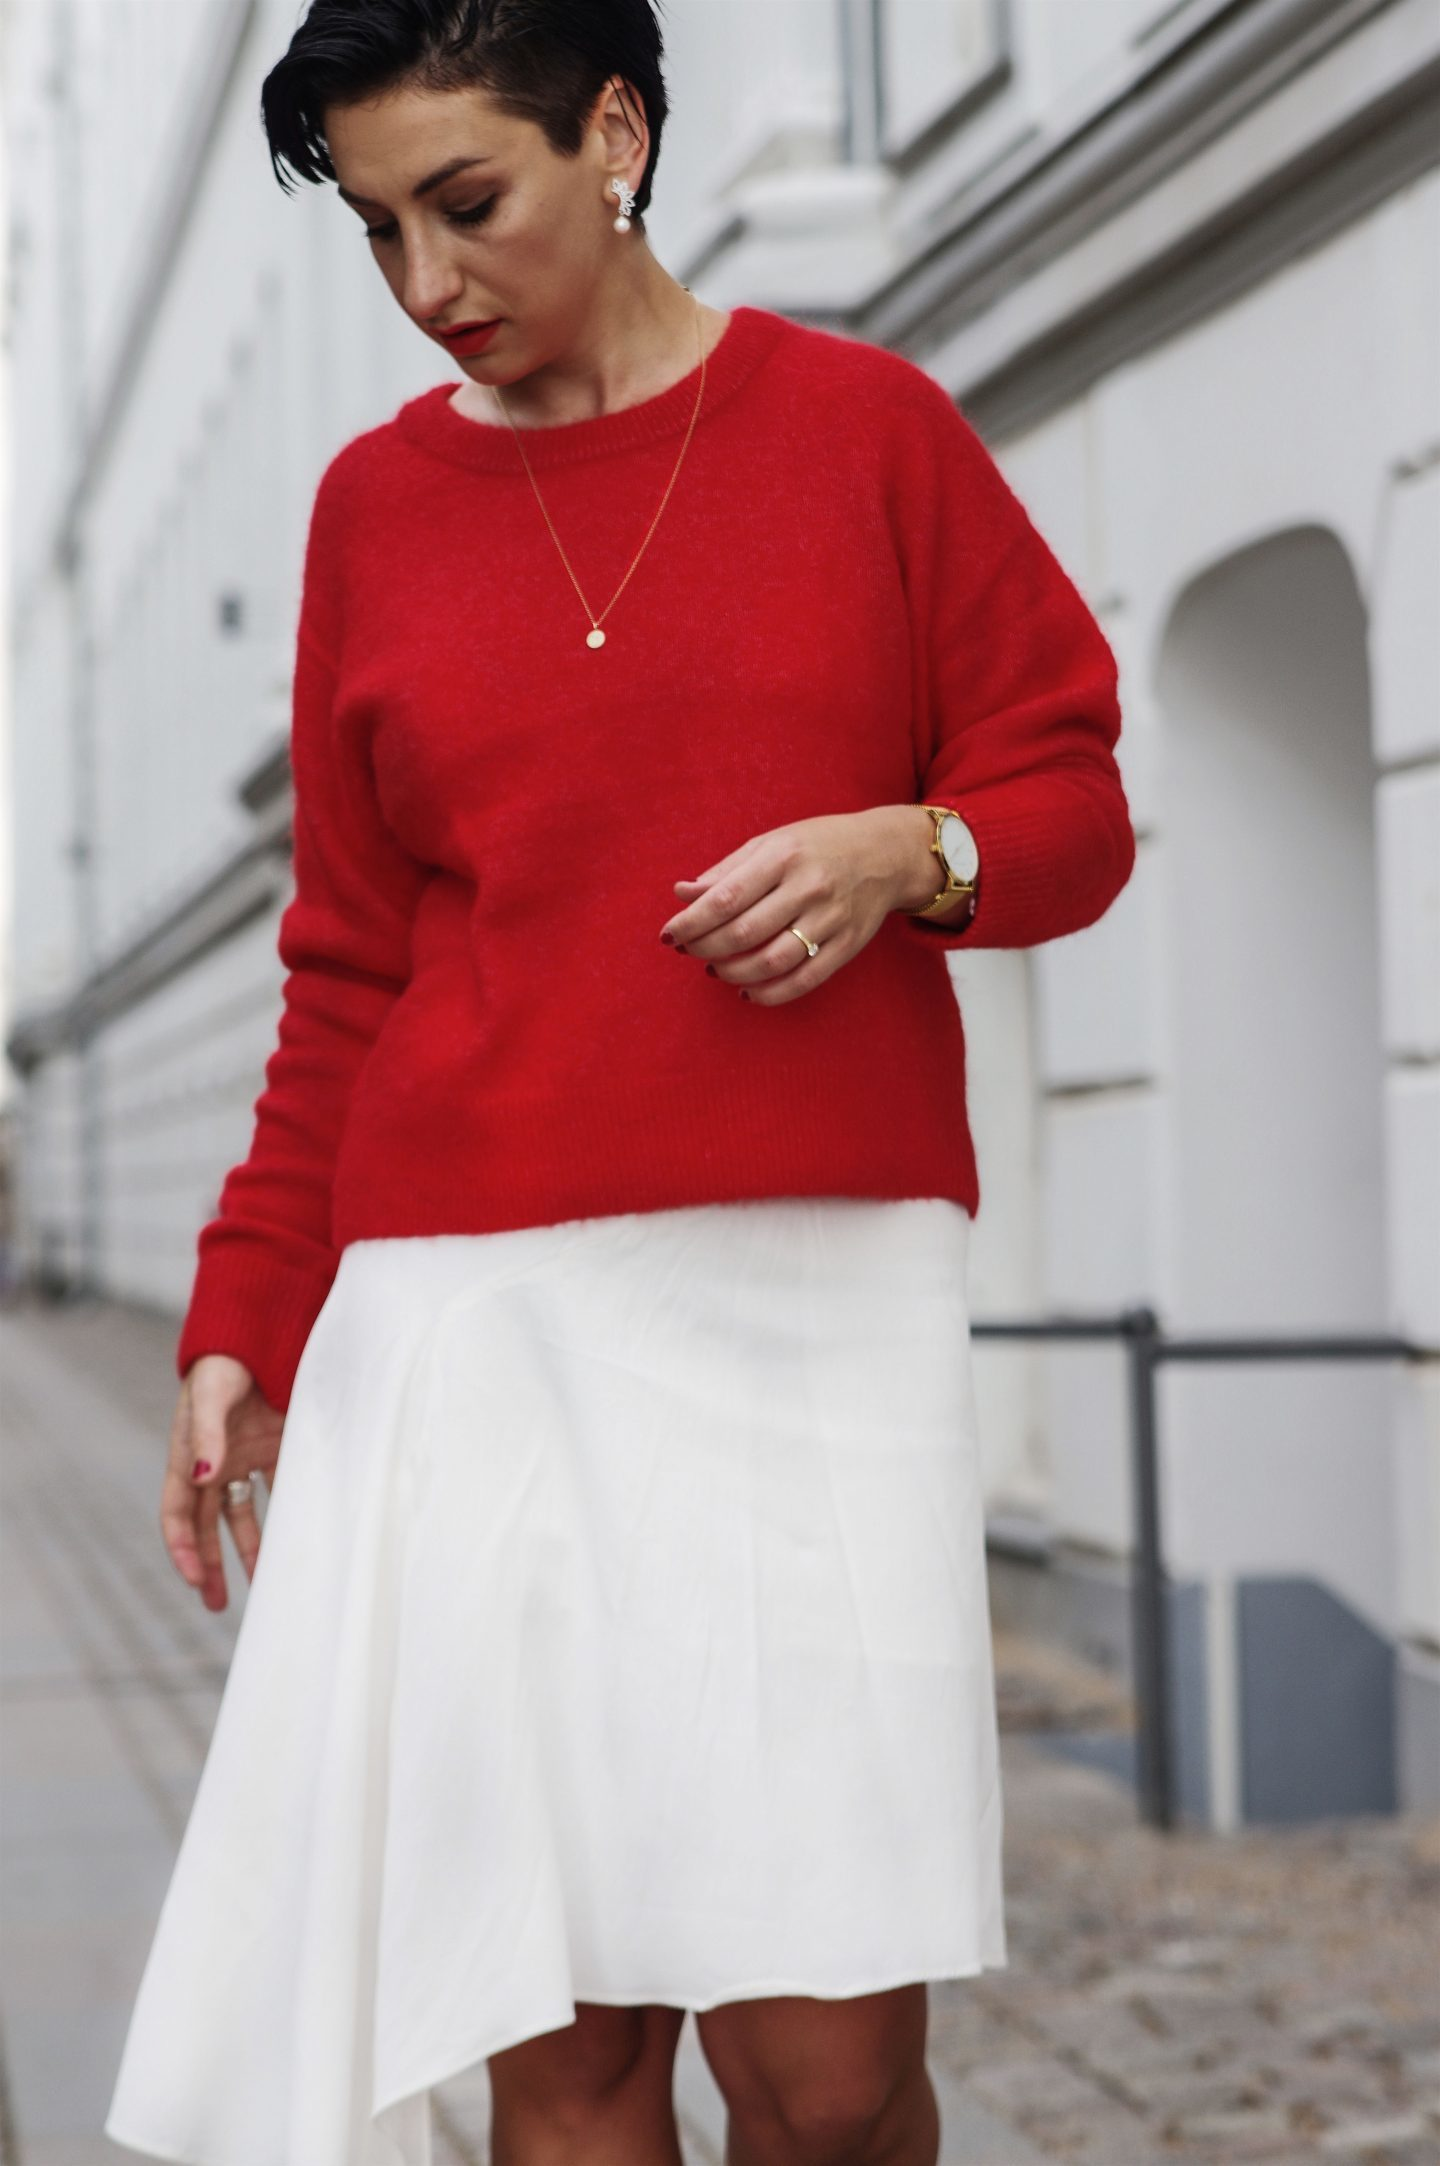 Red sweater and white skirt scandinavian Pinterest fashion Pinterest